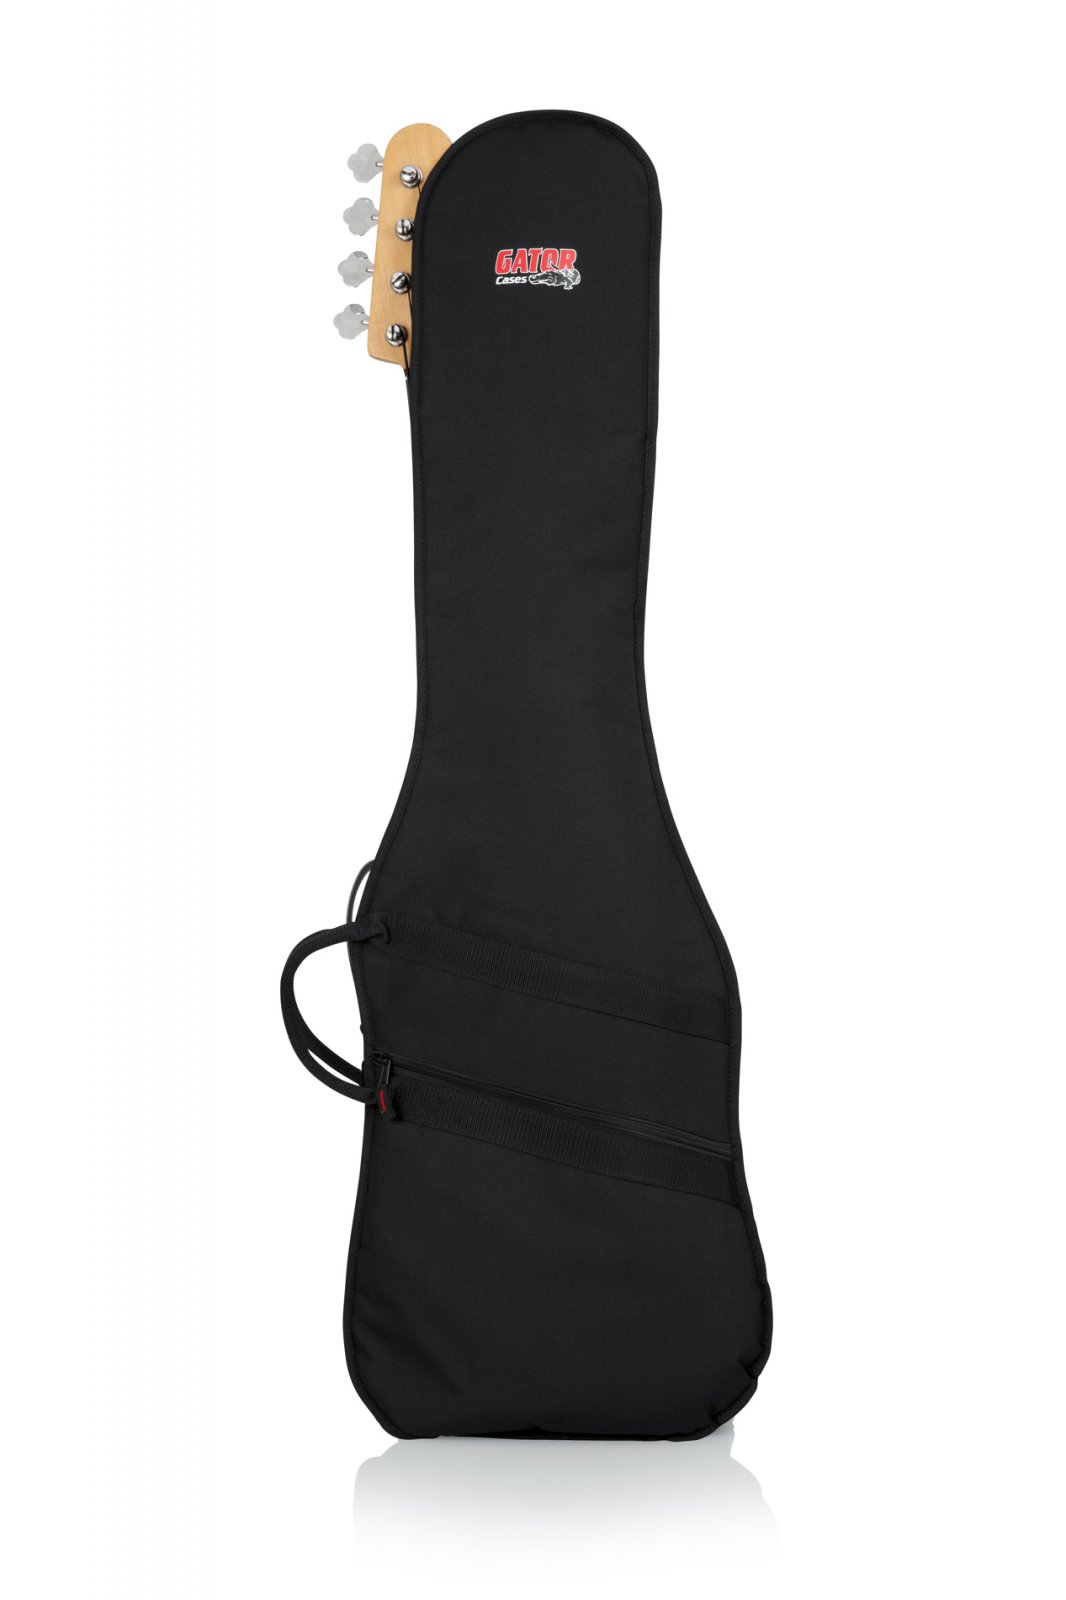 GATOR GBE Bass Guitar Gig Bag